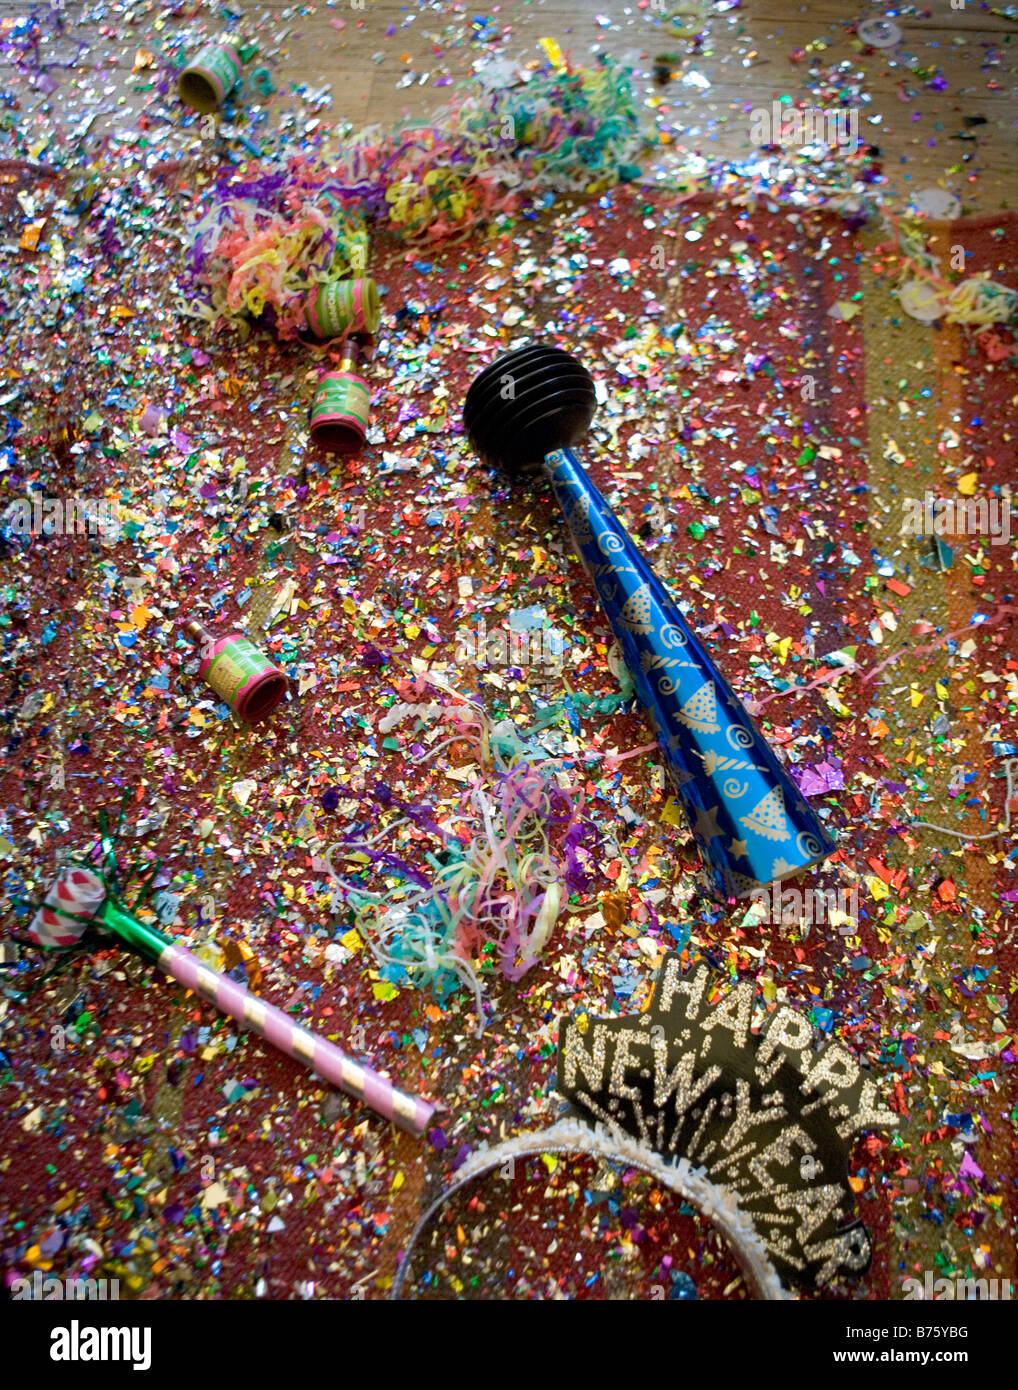 new years eve party wreckage including confetti poppers horns streamers and hats